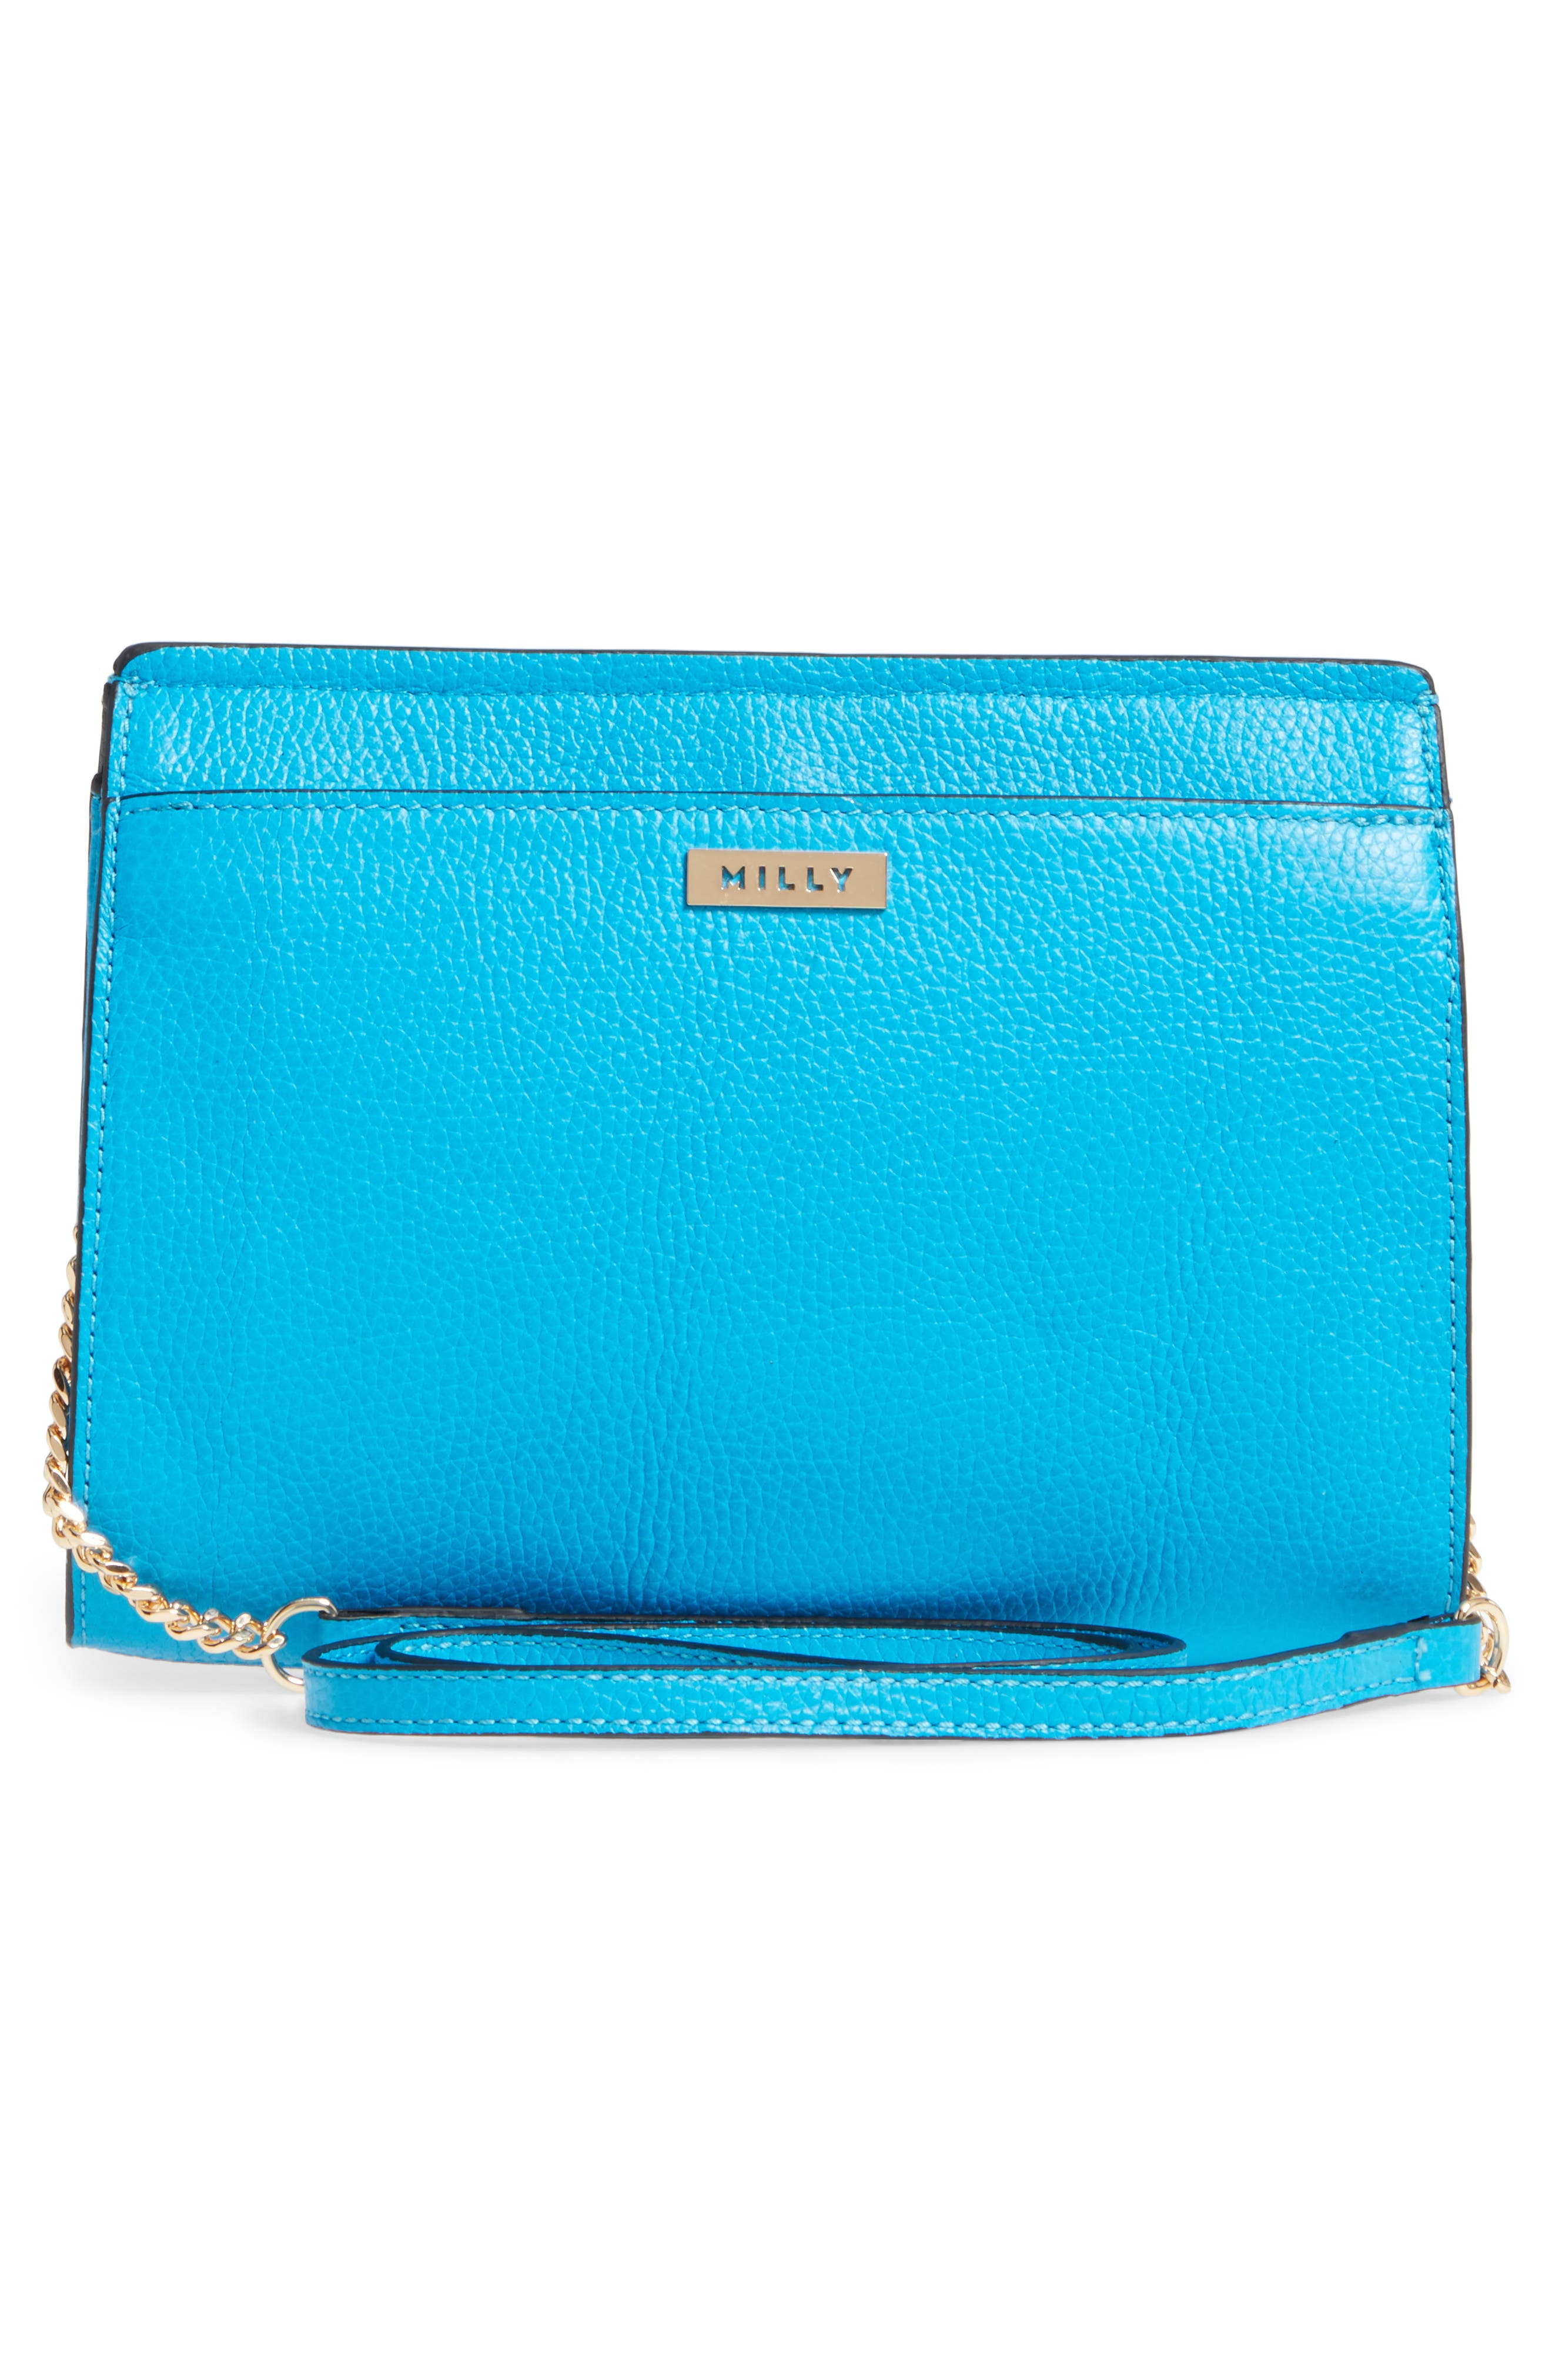 Astor Pebbled Leather Flap Clutch,                             Alternate thumbnail 11, color,